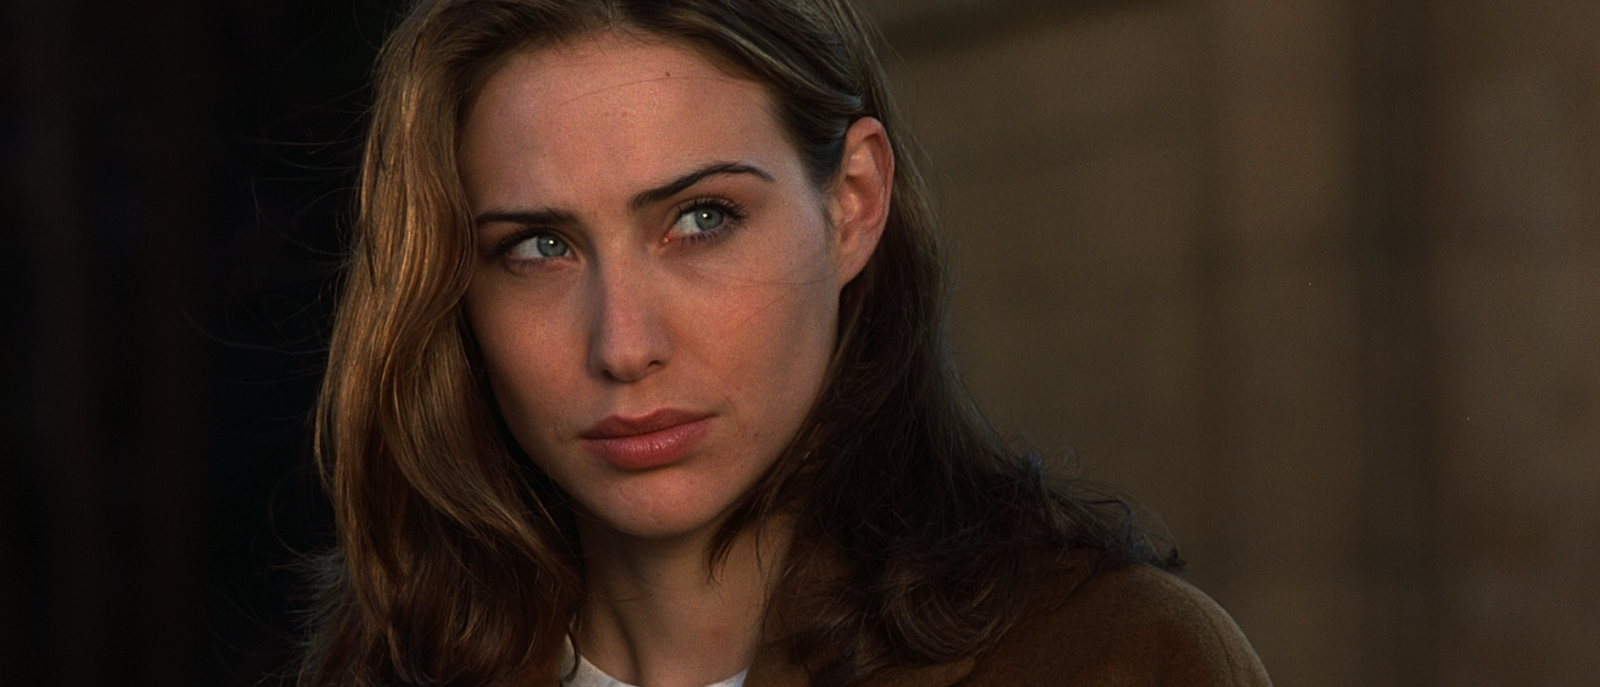 claire forlani the rock images. Black Bedroom Furniture Sets. Home Design Ideas